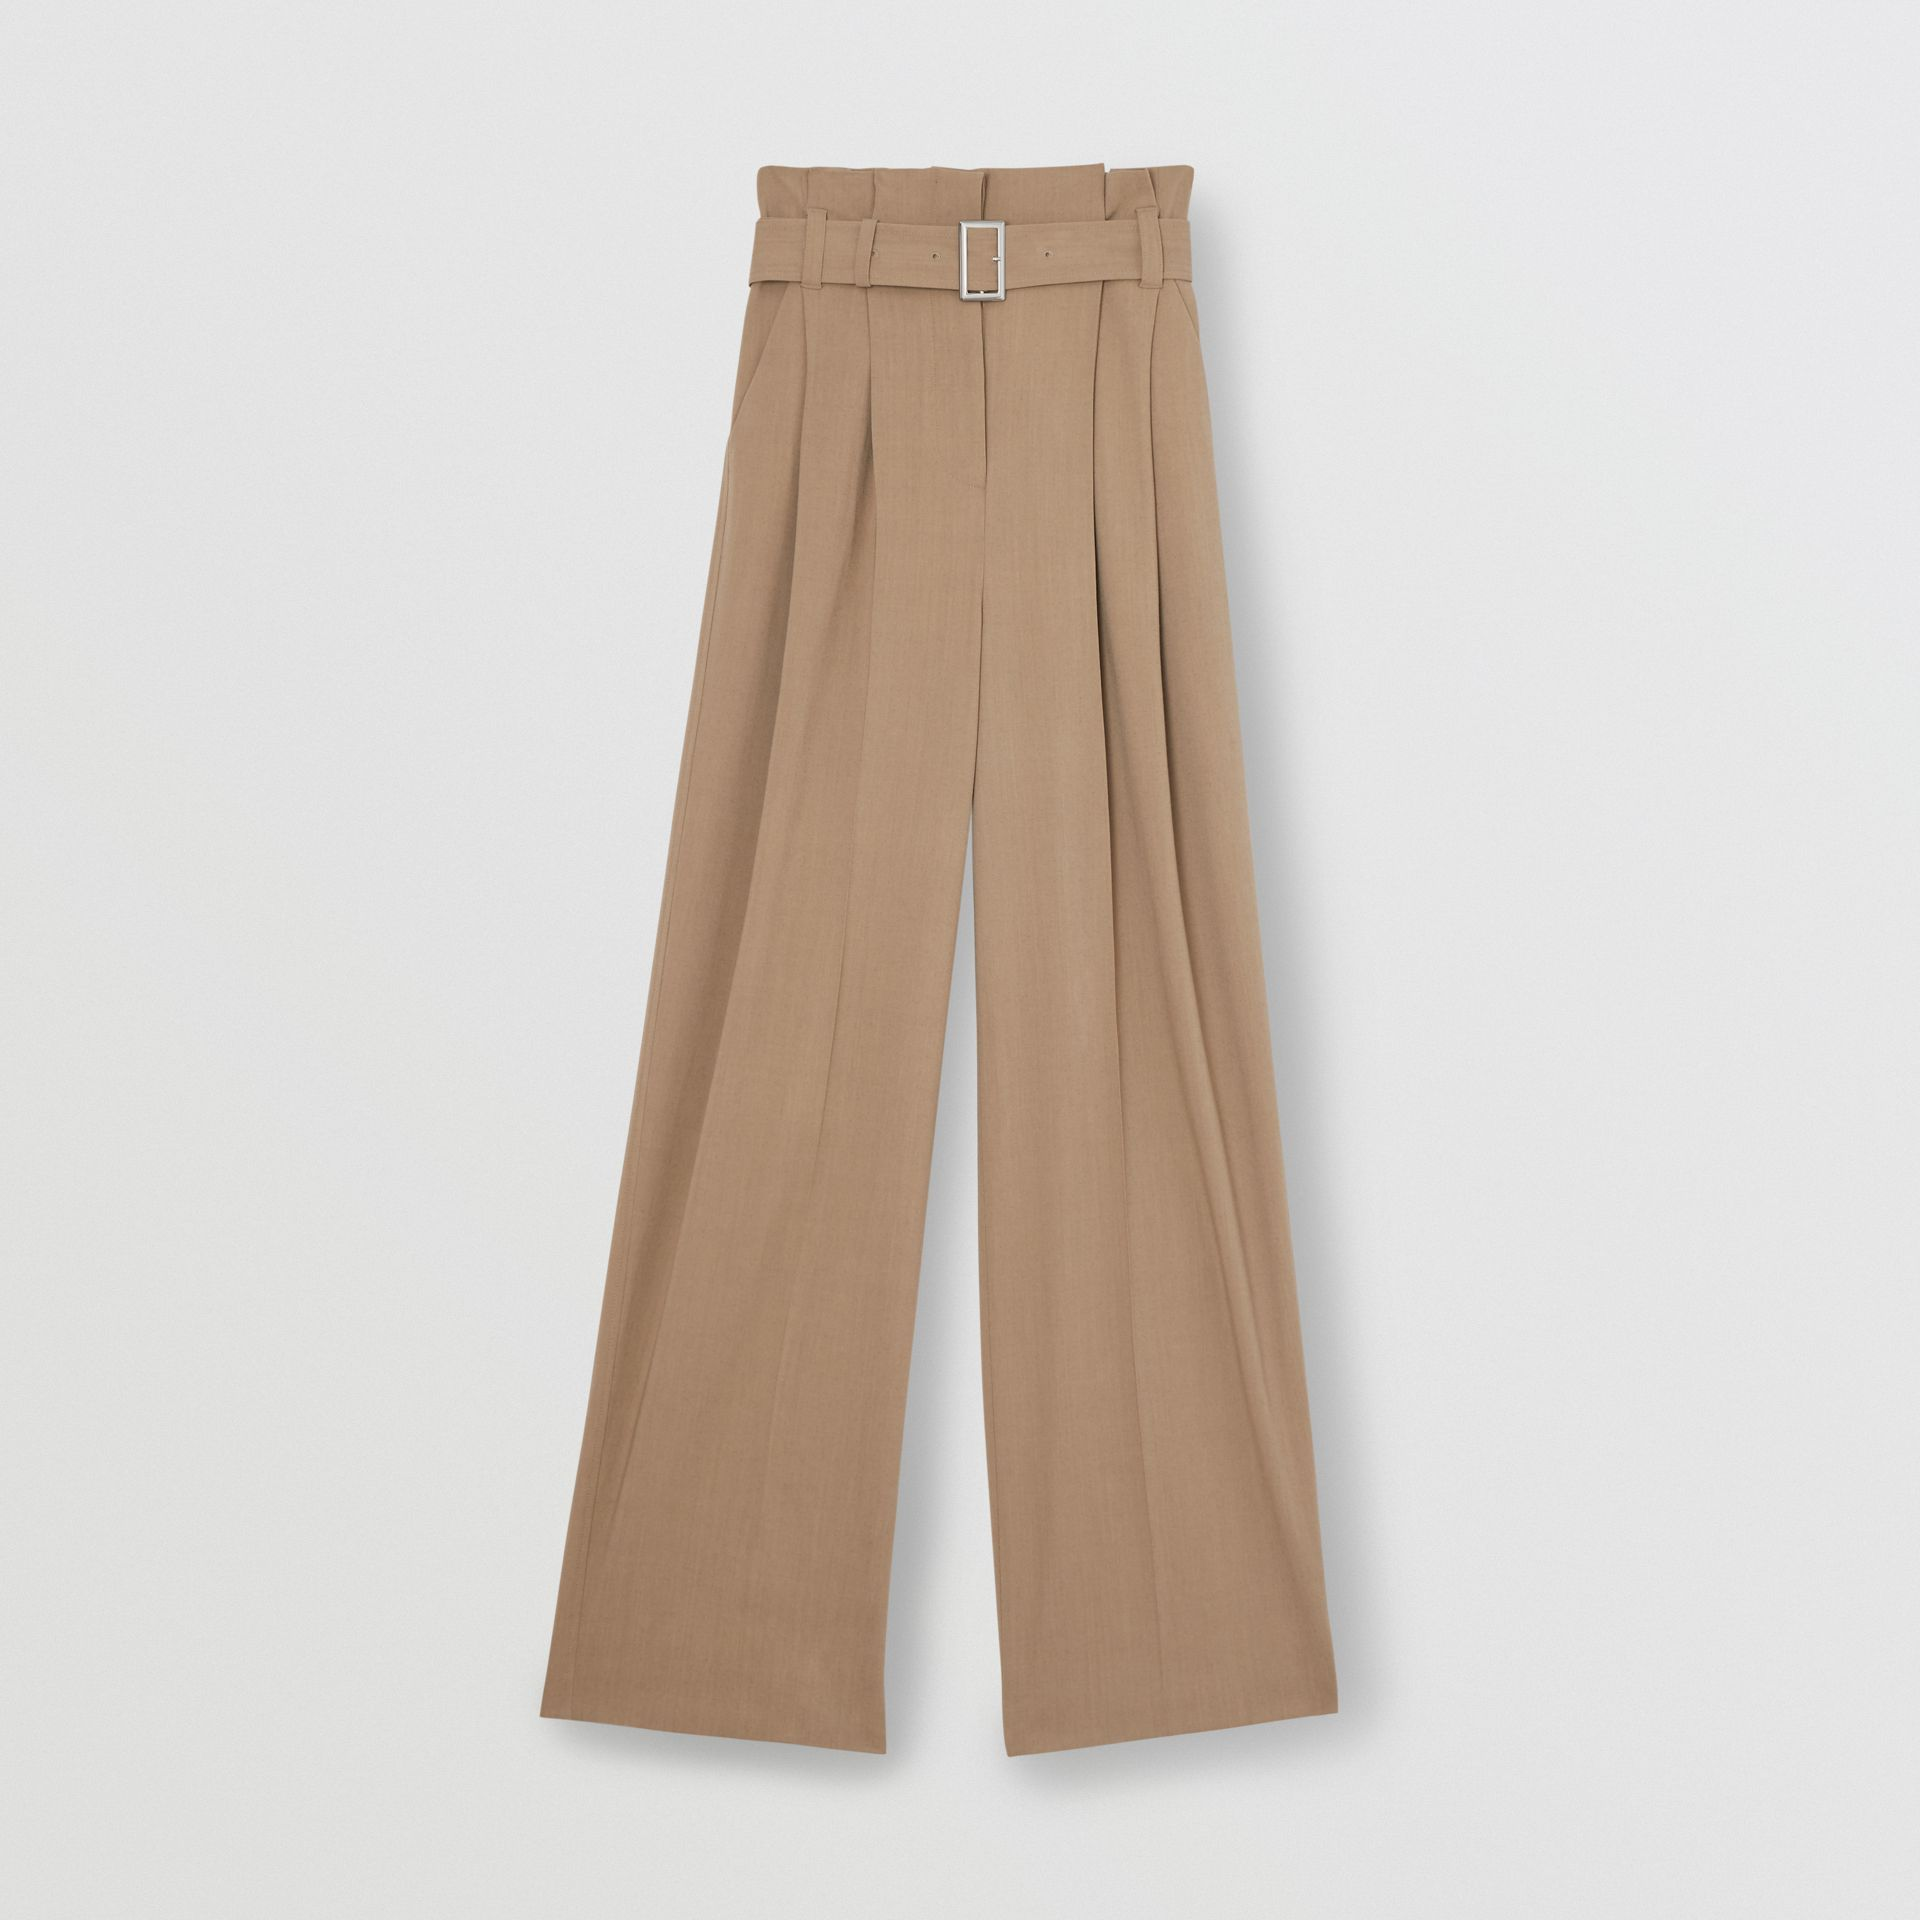 Wool Blend High-waisted Trousers in Warm Taupe - Women | Burberry Australia - gallery image 3